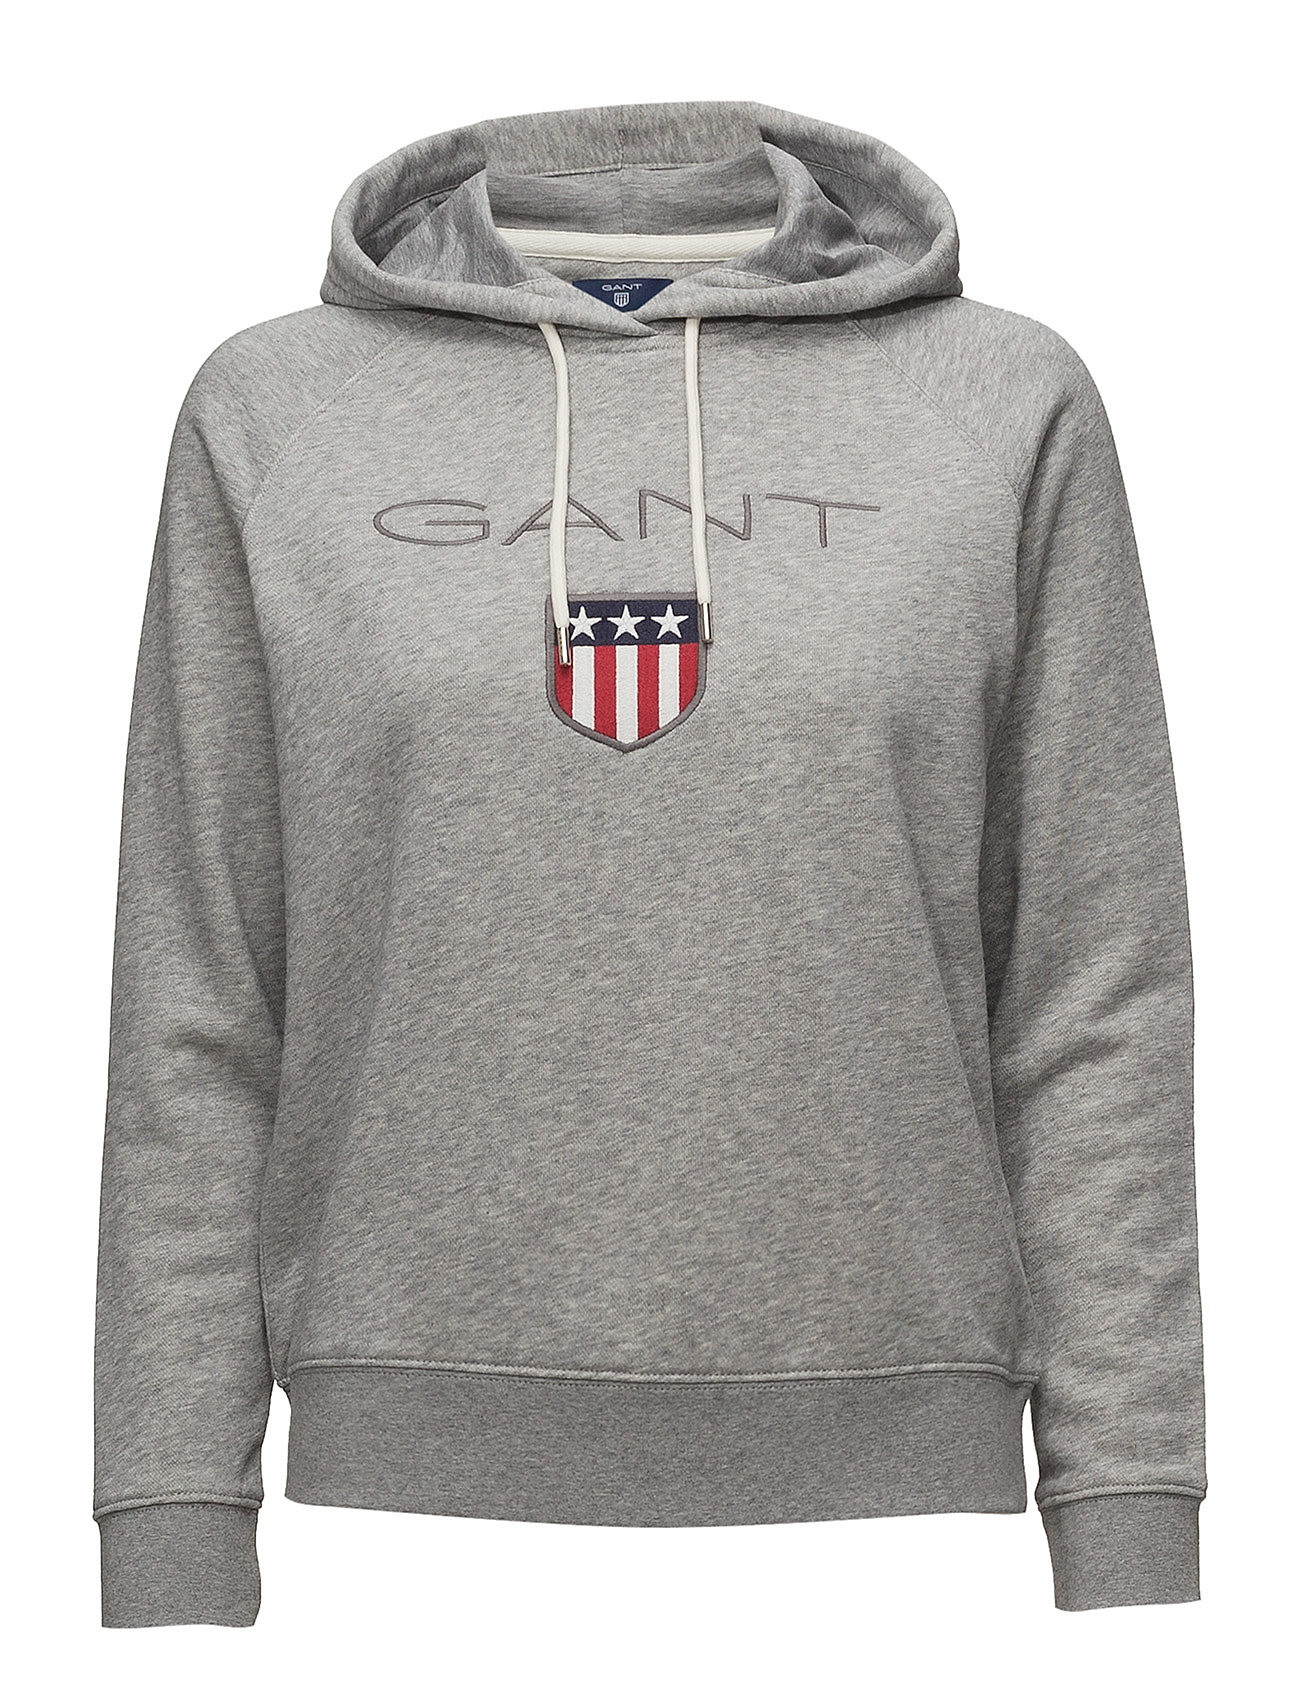 GANT GANT SHIELD SWEAT HOODIE - GREY MELANGE